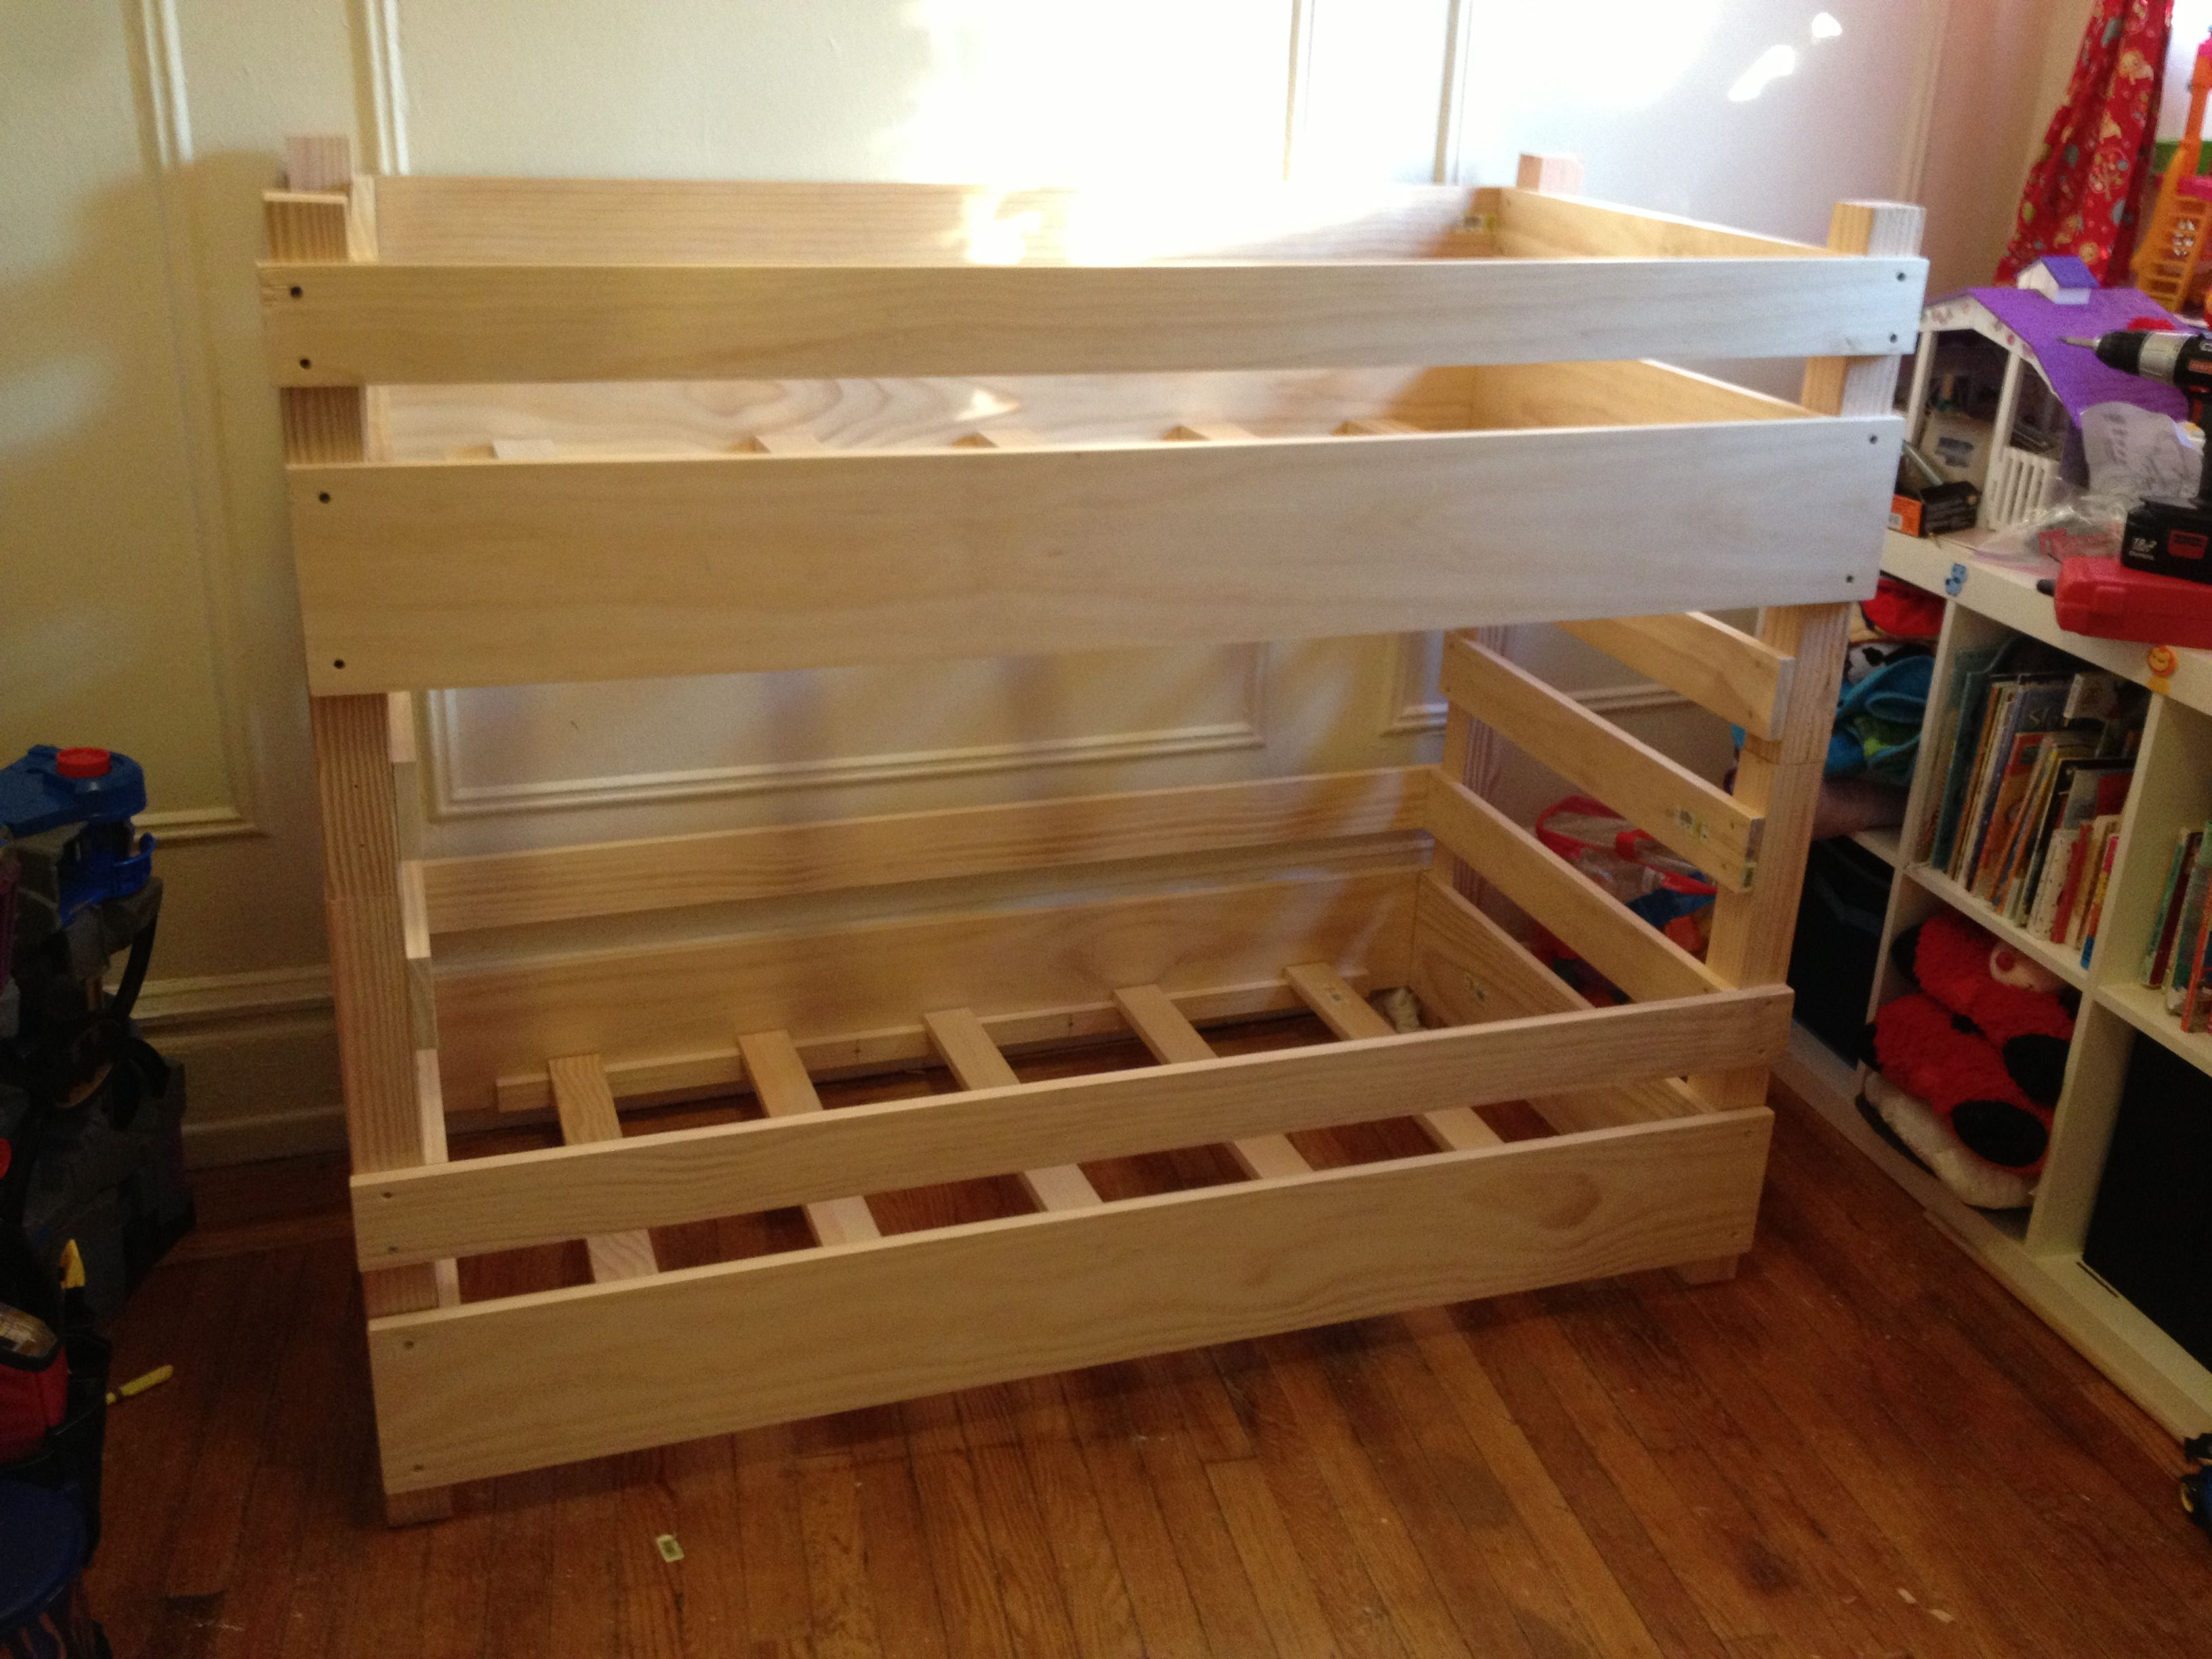 Toddler Size Bunk Beds Perfect For Small Rooms Space Saving Beds